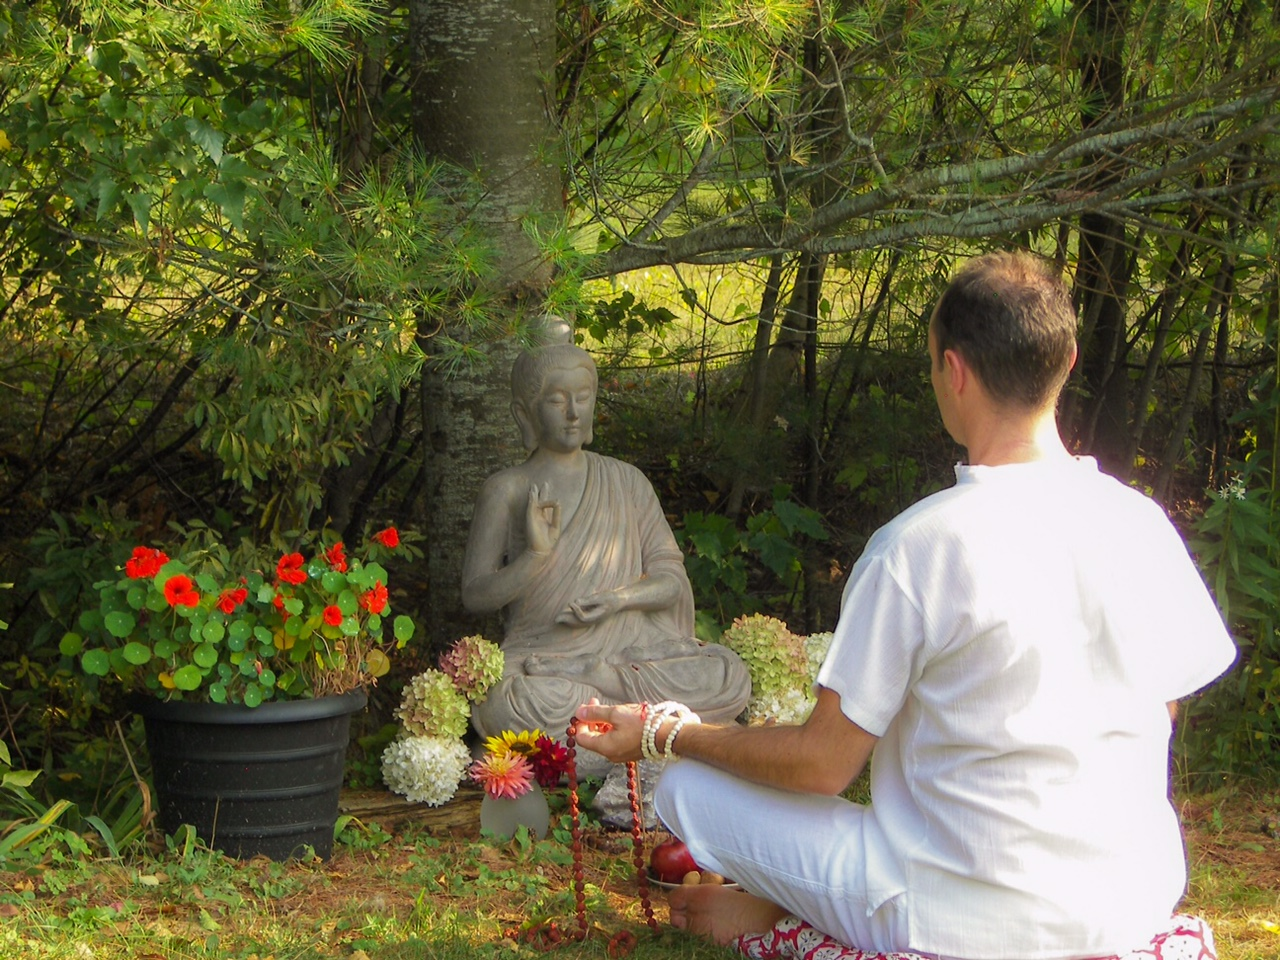 Meditation in the garden